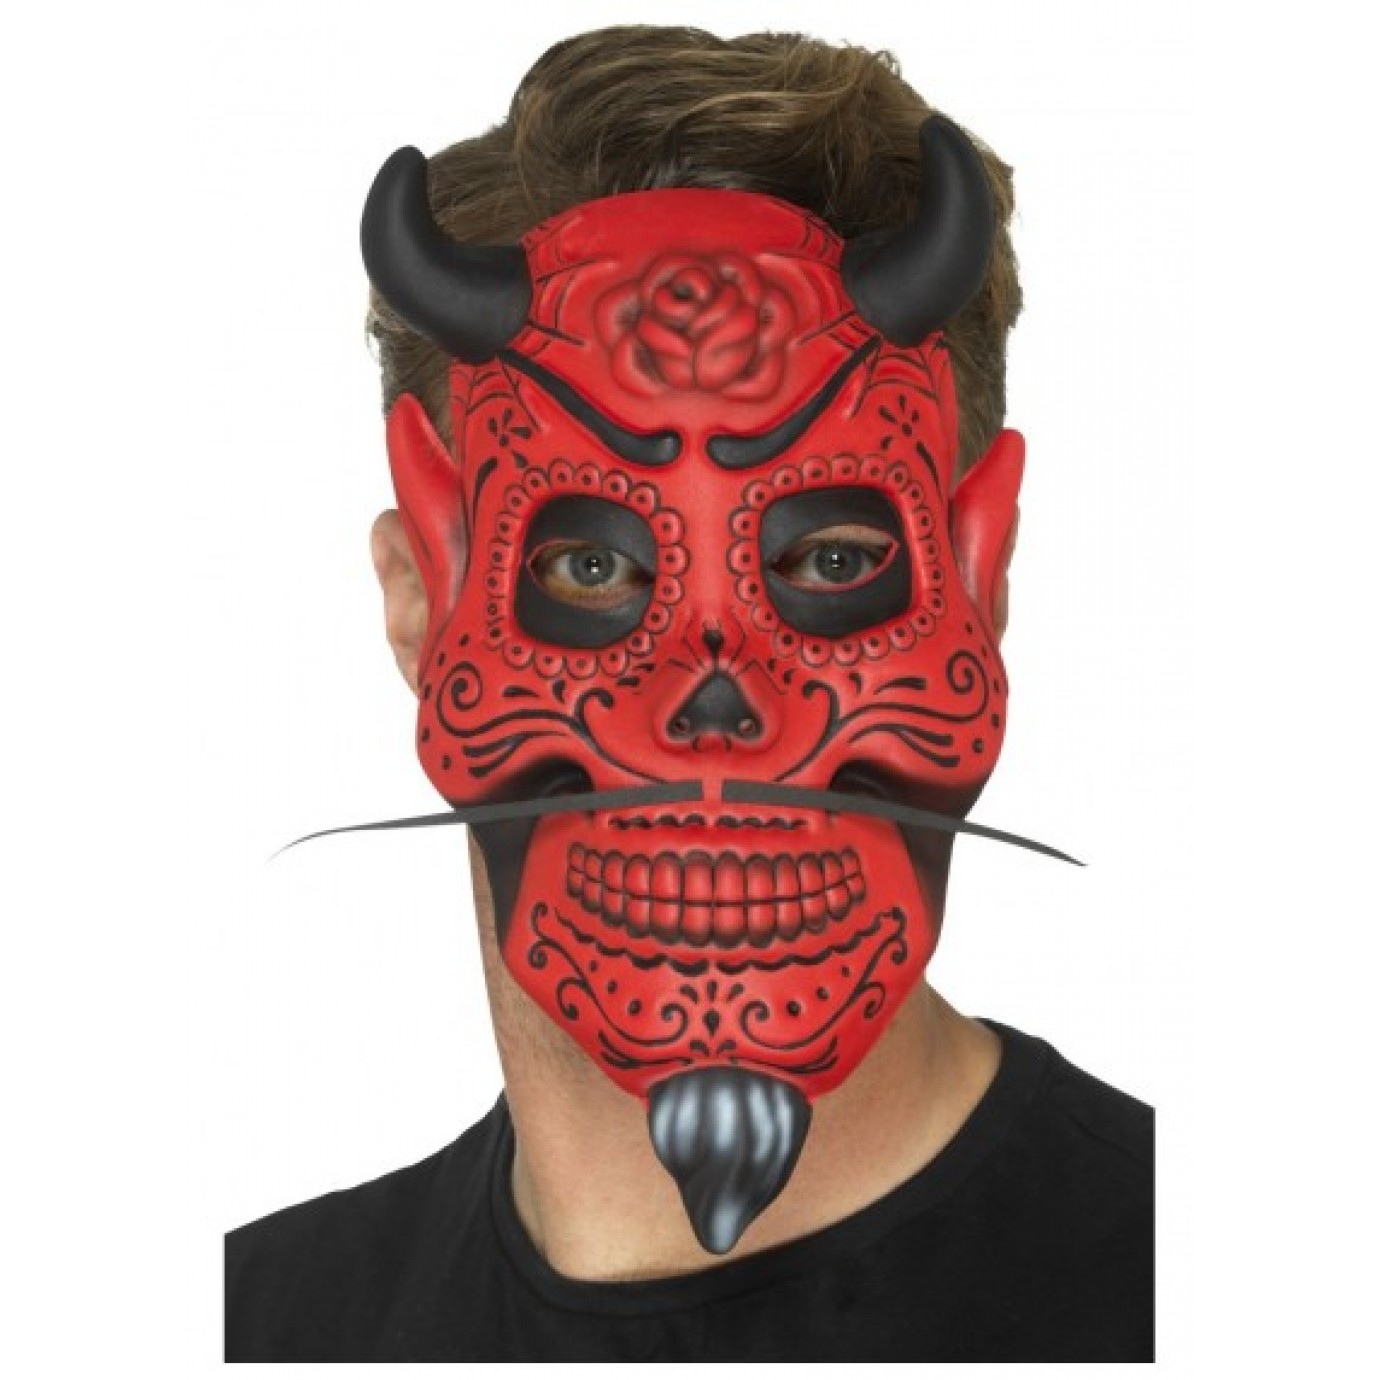 Day of the Dead Mask Red Black Pink Dia de Muertos Halloween Costume Accessory